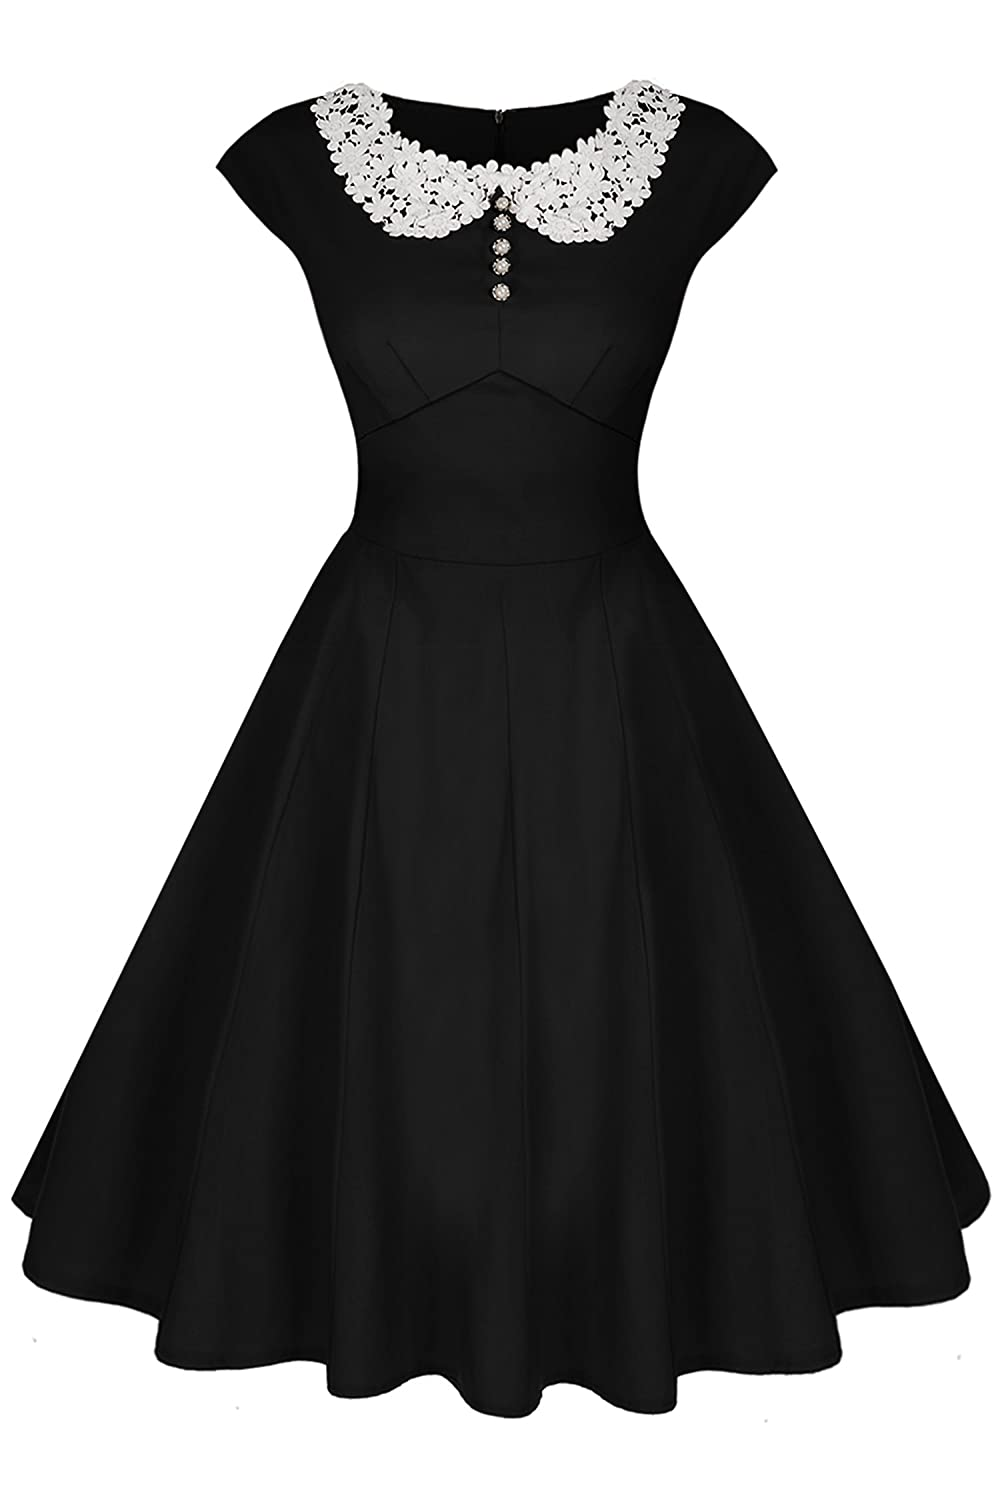 1940s Pinup Dresses for Sale Audrey Hepburn Style 1940s Rockabilly Evening Dress  AT vintagedancer.com